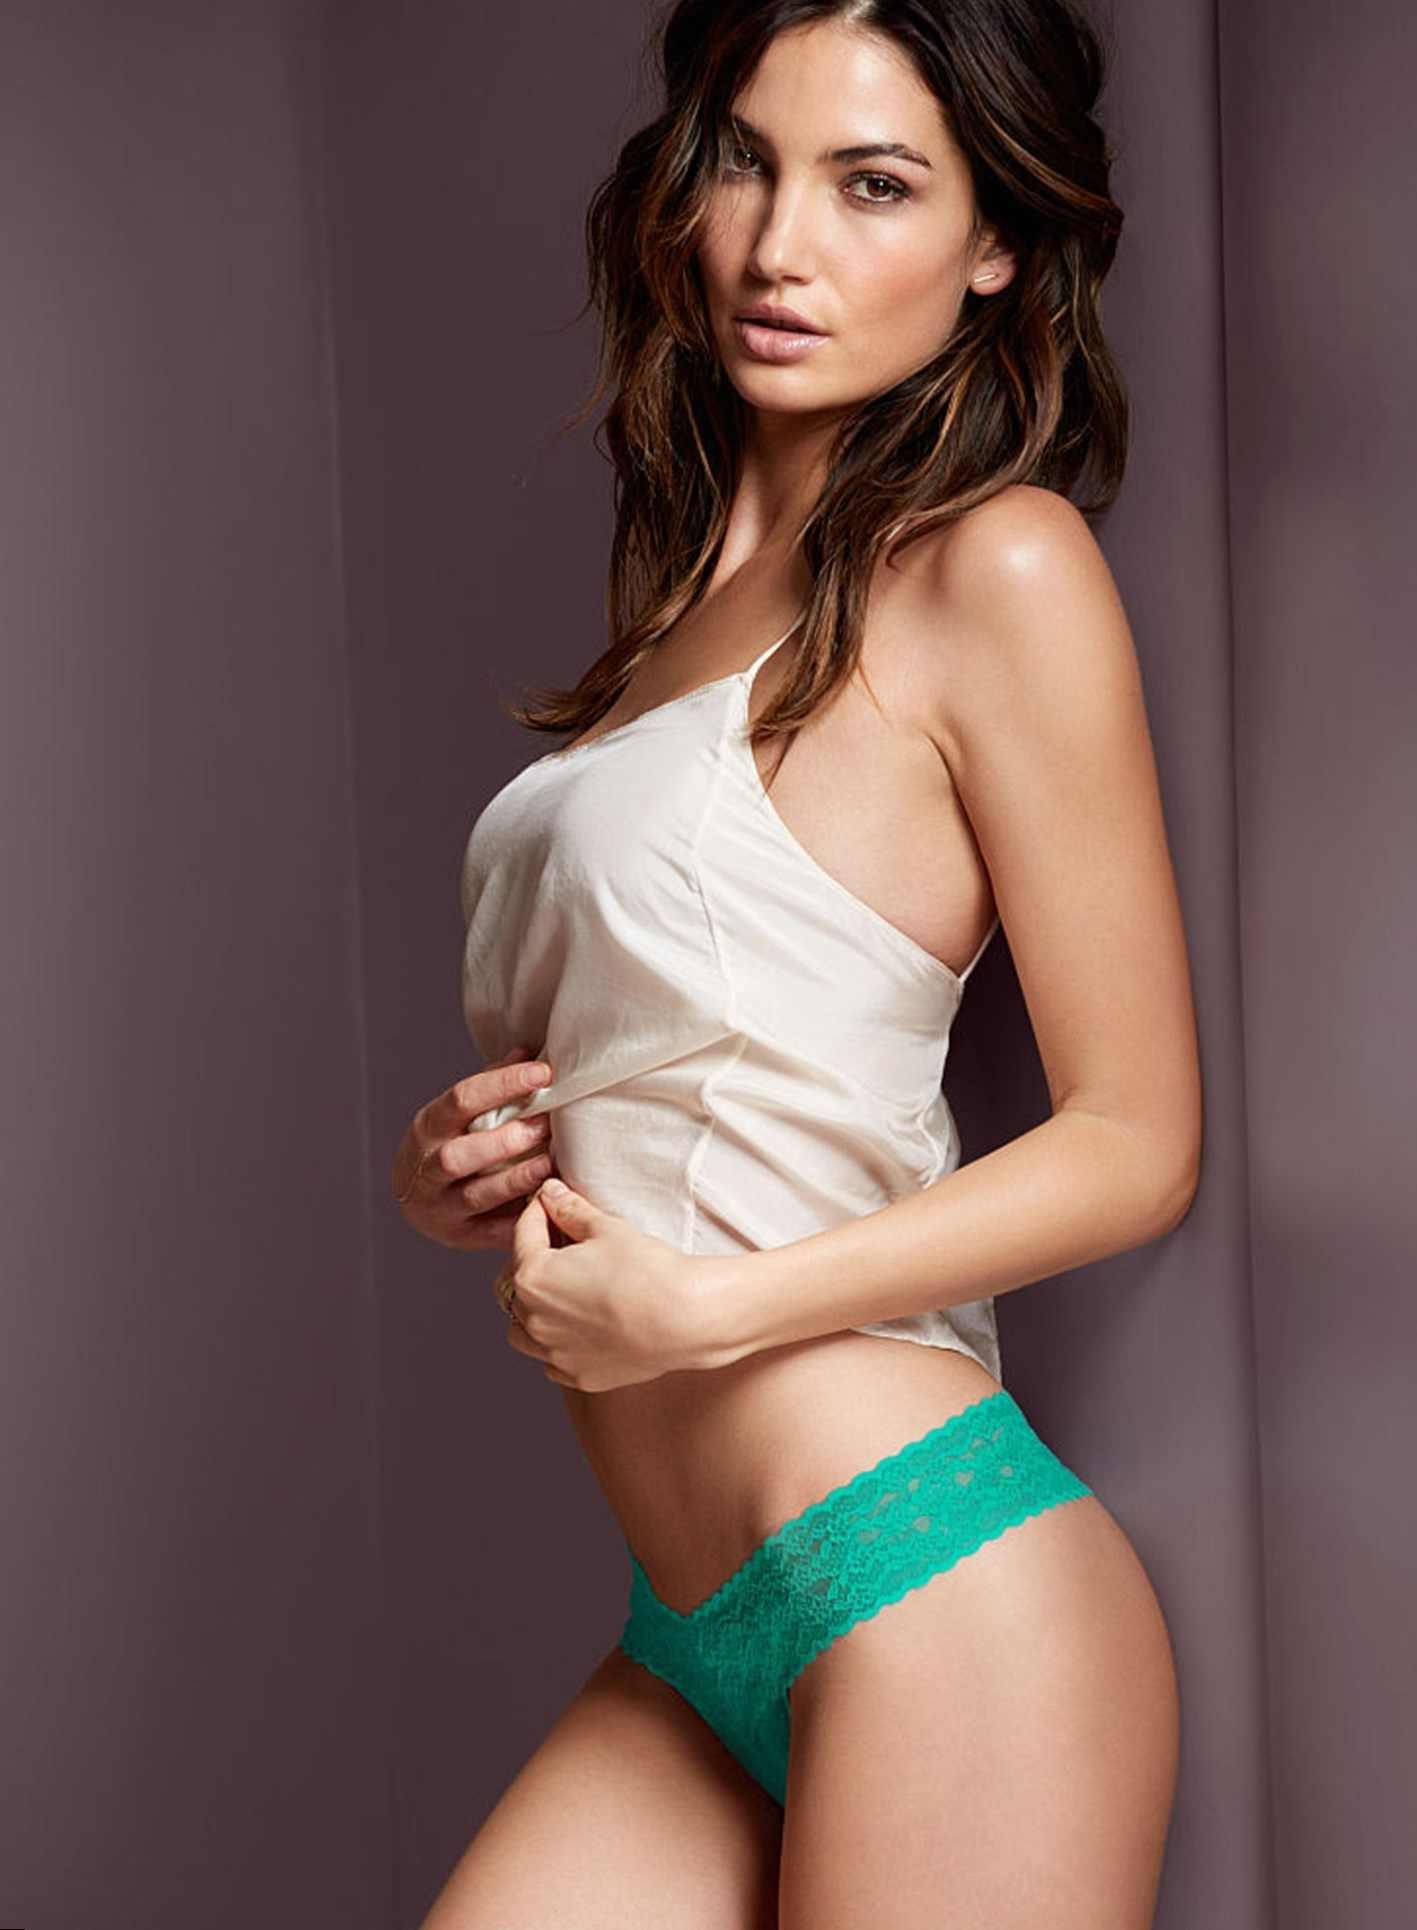 Girl Wallpaper Face Tattoo Lily Aldridge Weight Height And Age We Know It All